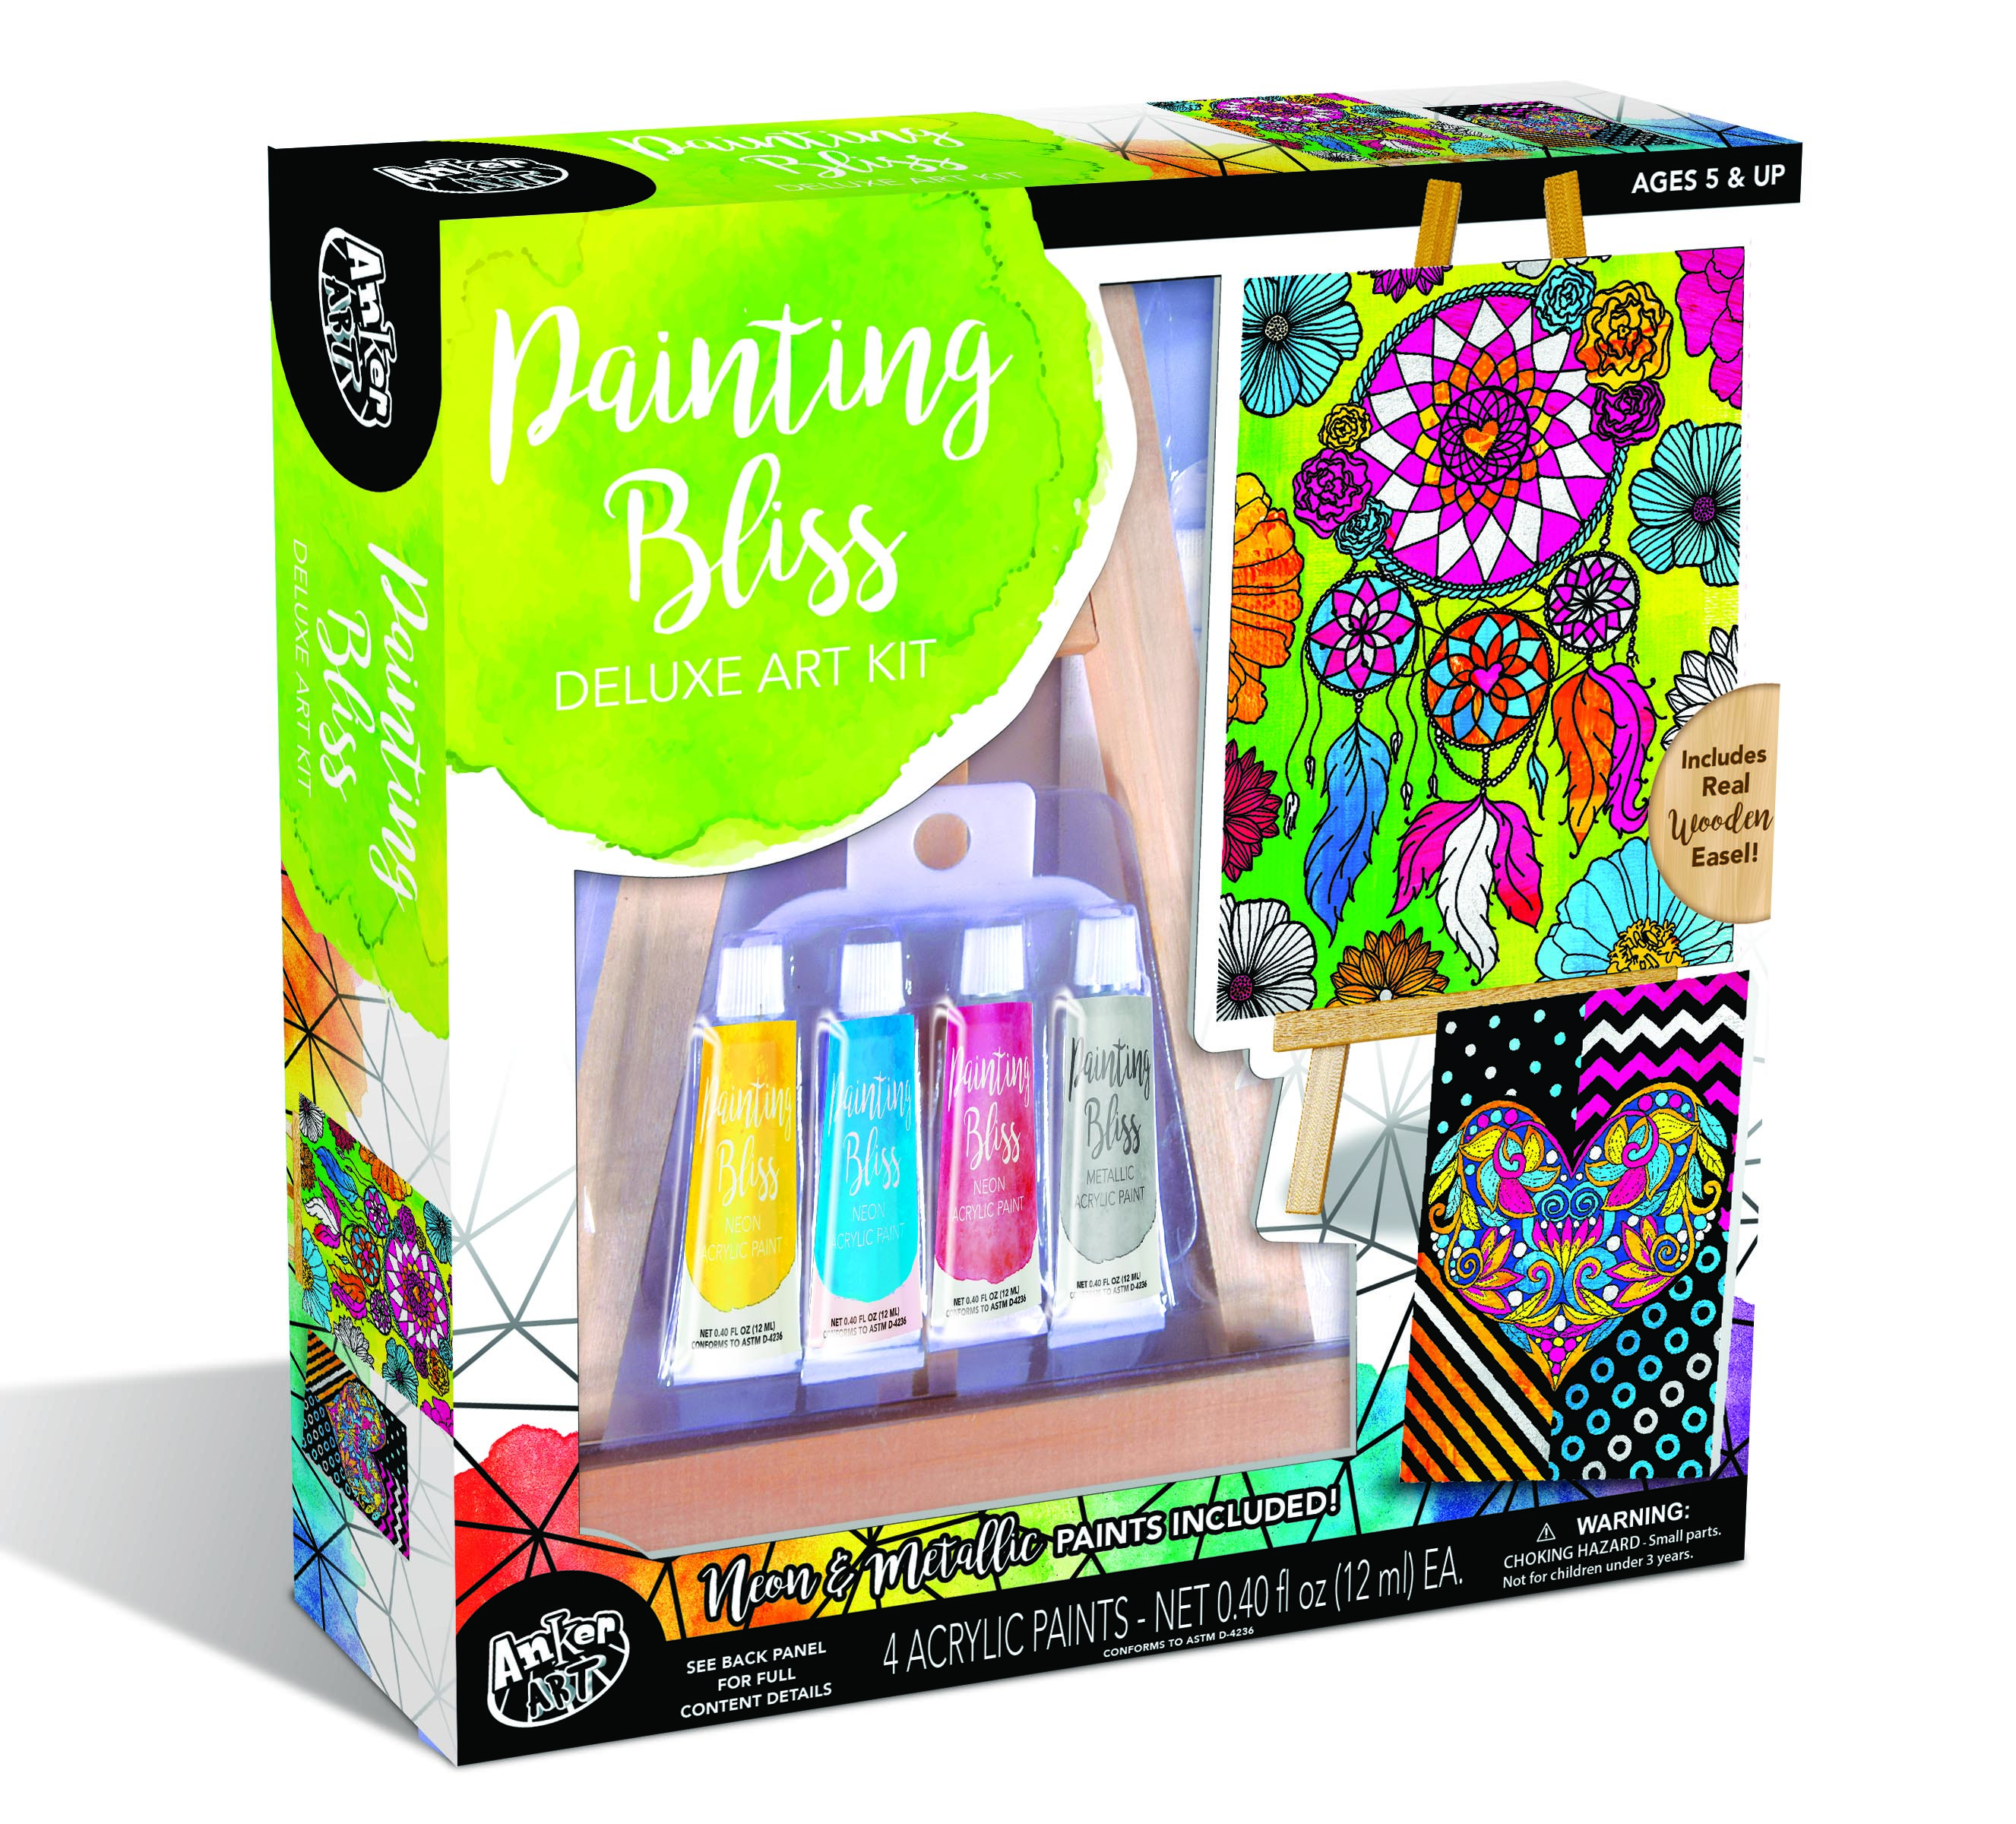 PAINTING BLISS DELUXE ART KIT